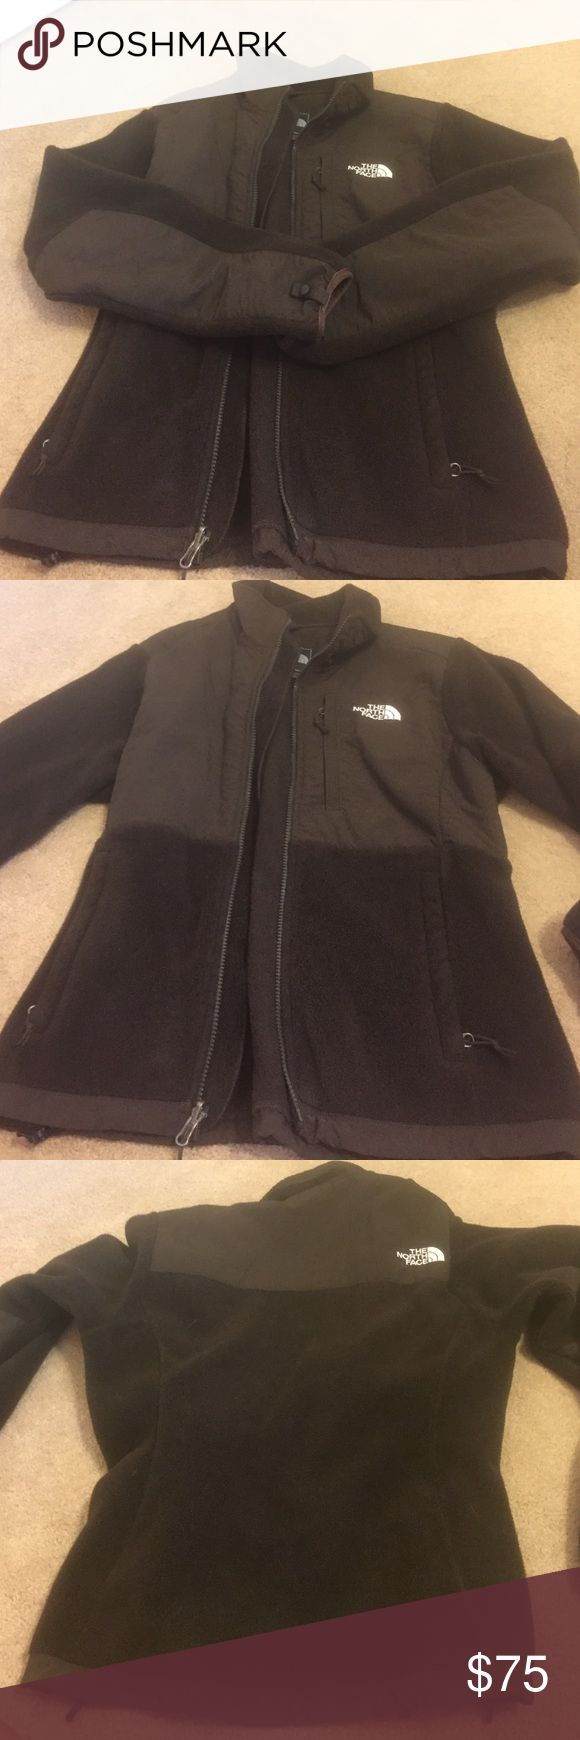 Women's North Face jacket Brown North Face zip up jacket. Women's small. The North Face Jackets & Coats